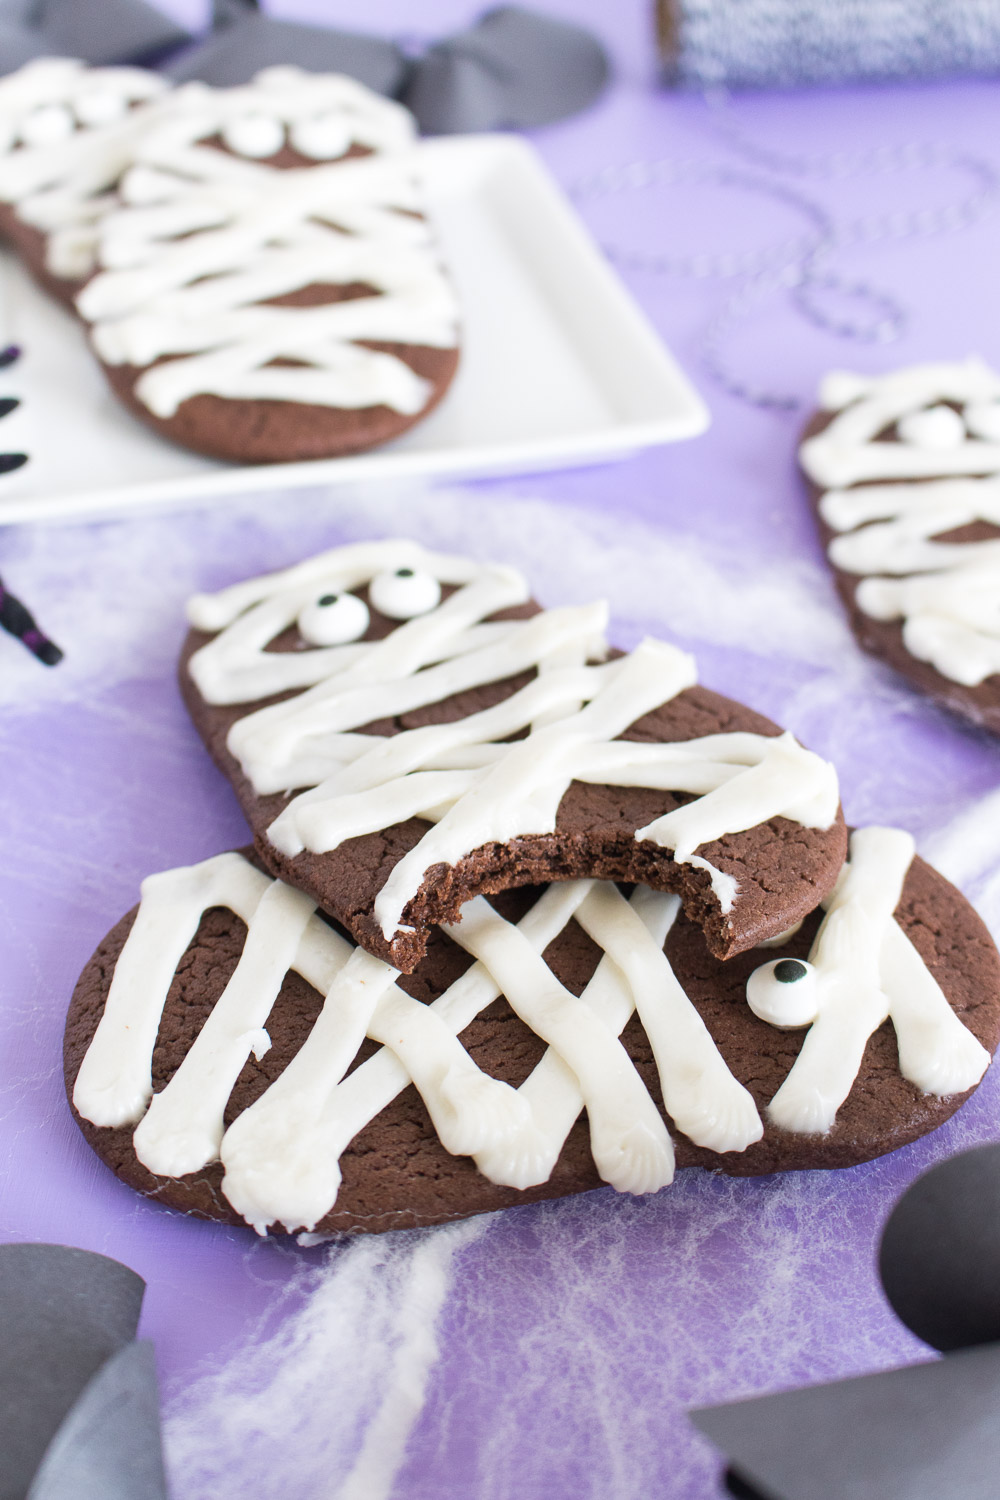 Chocolate Mummy Cookies for Halloween! (Cake Batter Cookies) | Club Crafted